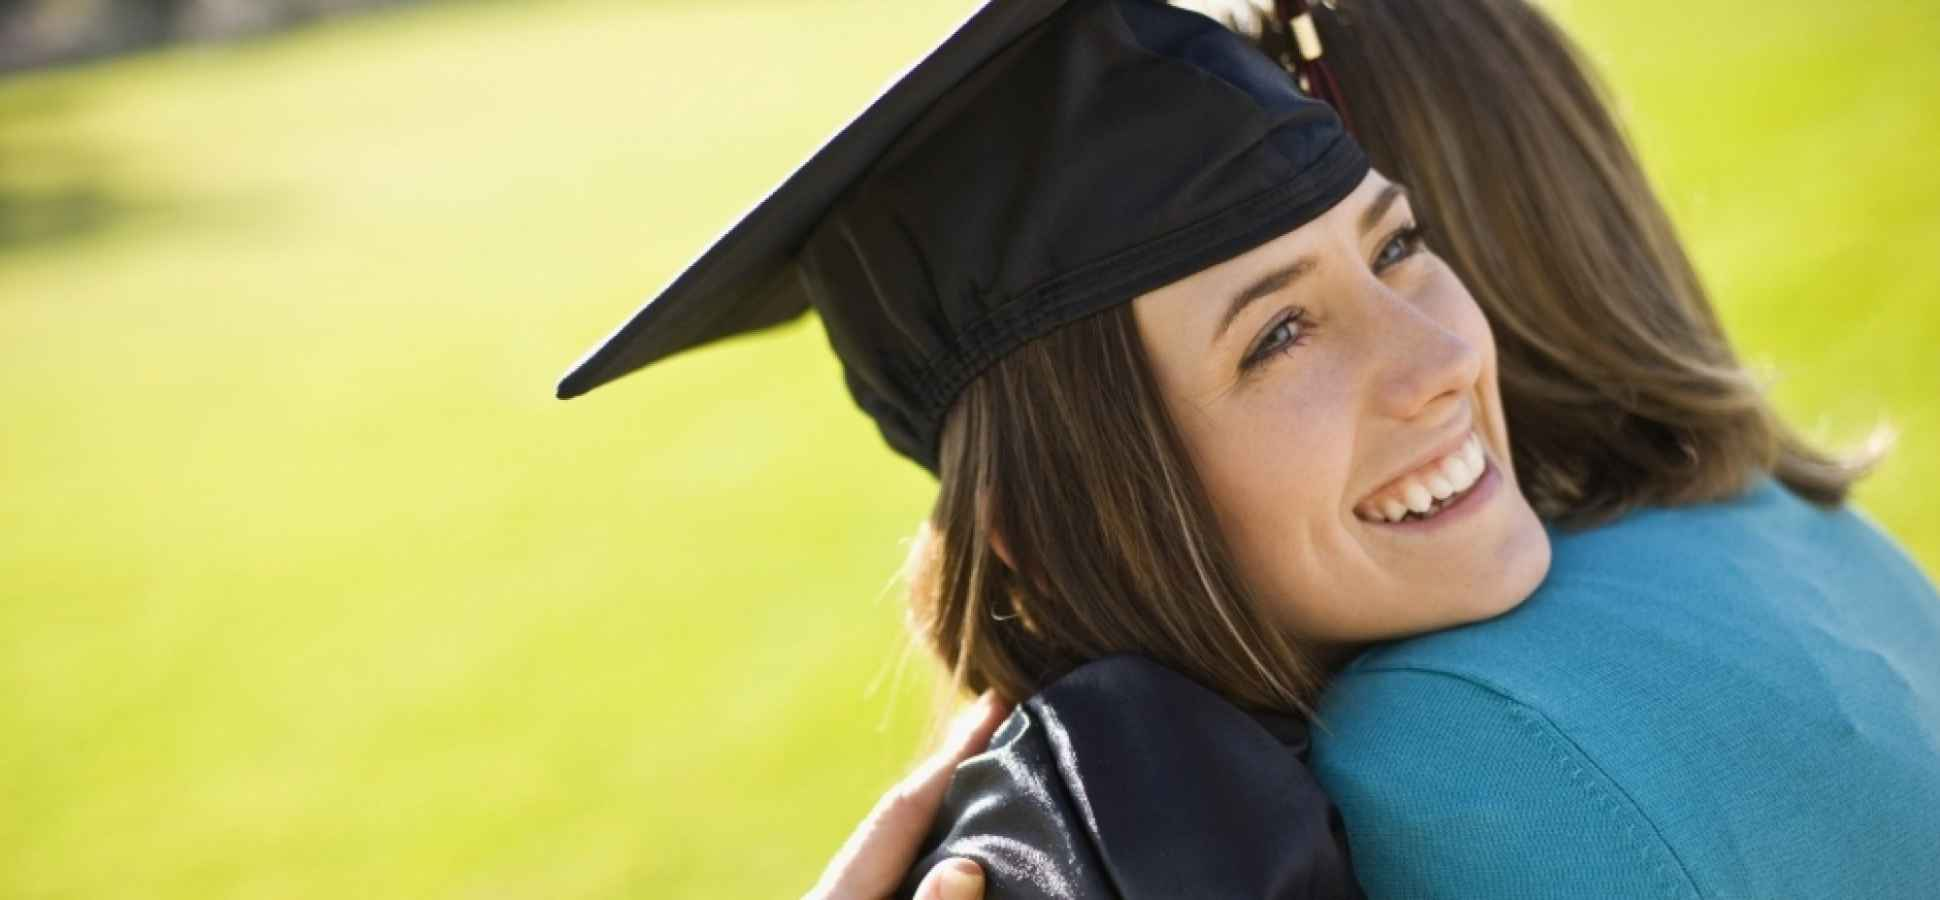 5 Incredibly Simple Secrets for Finding a Great Job After Graduation